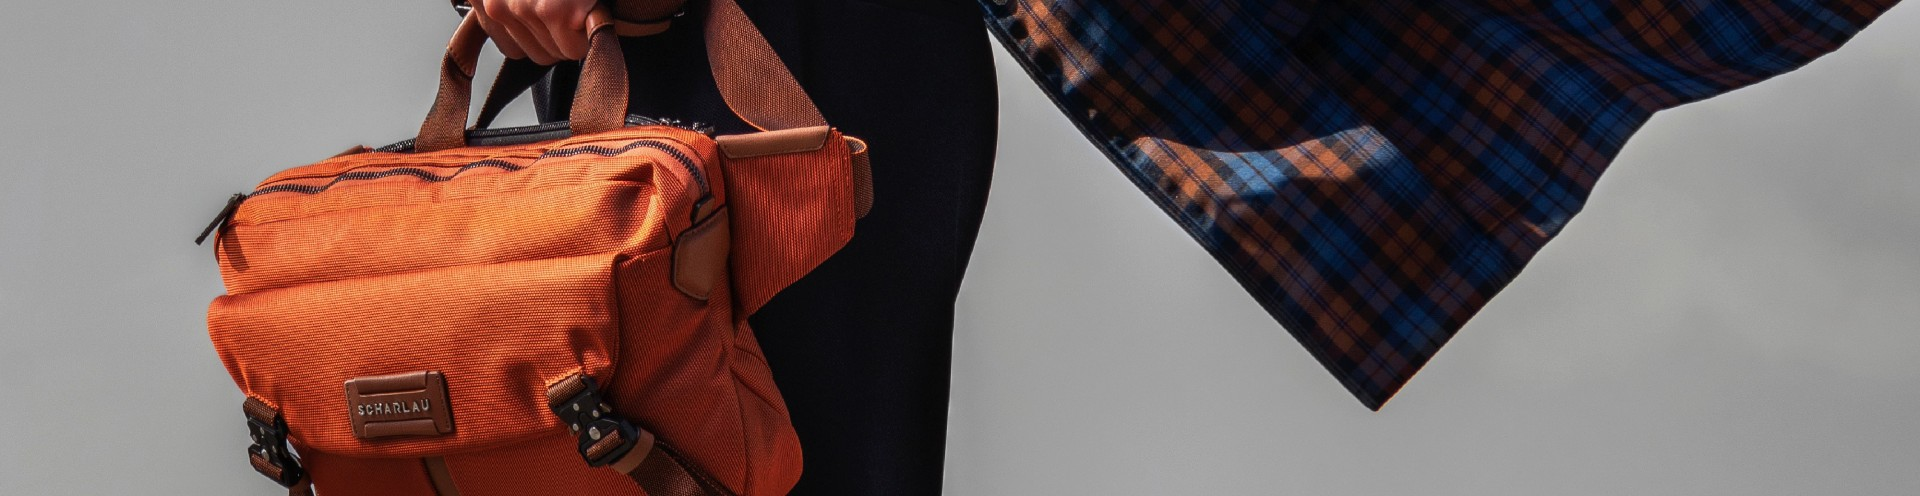 Exclusive Customizable Waist Bags for Men